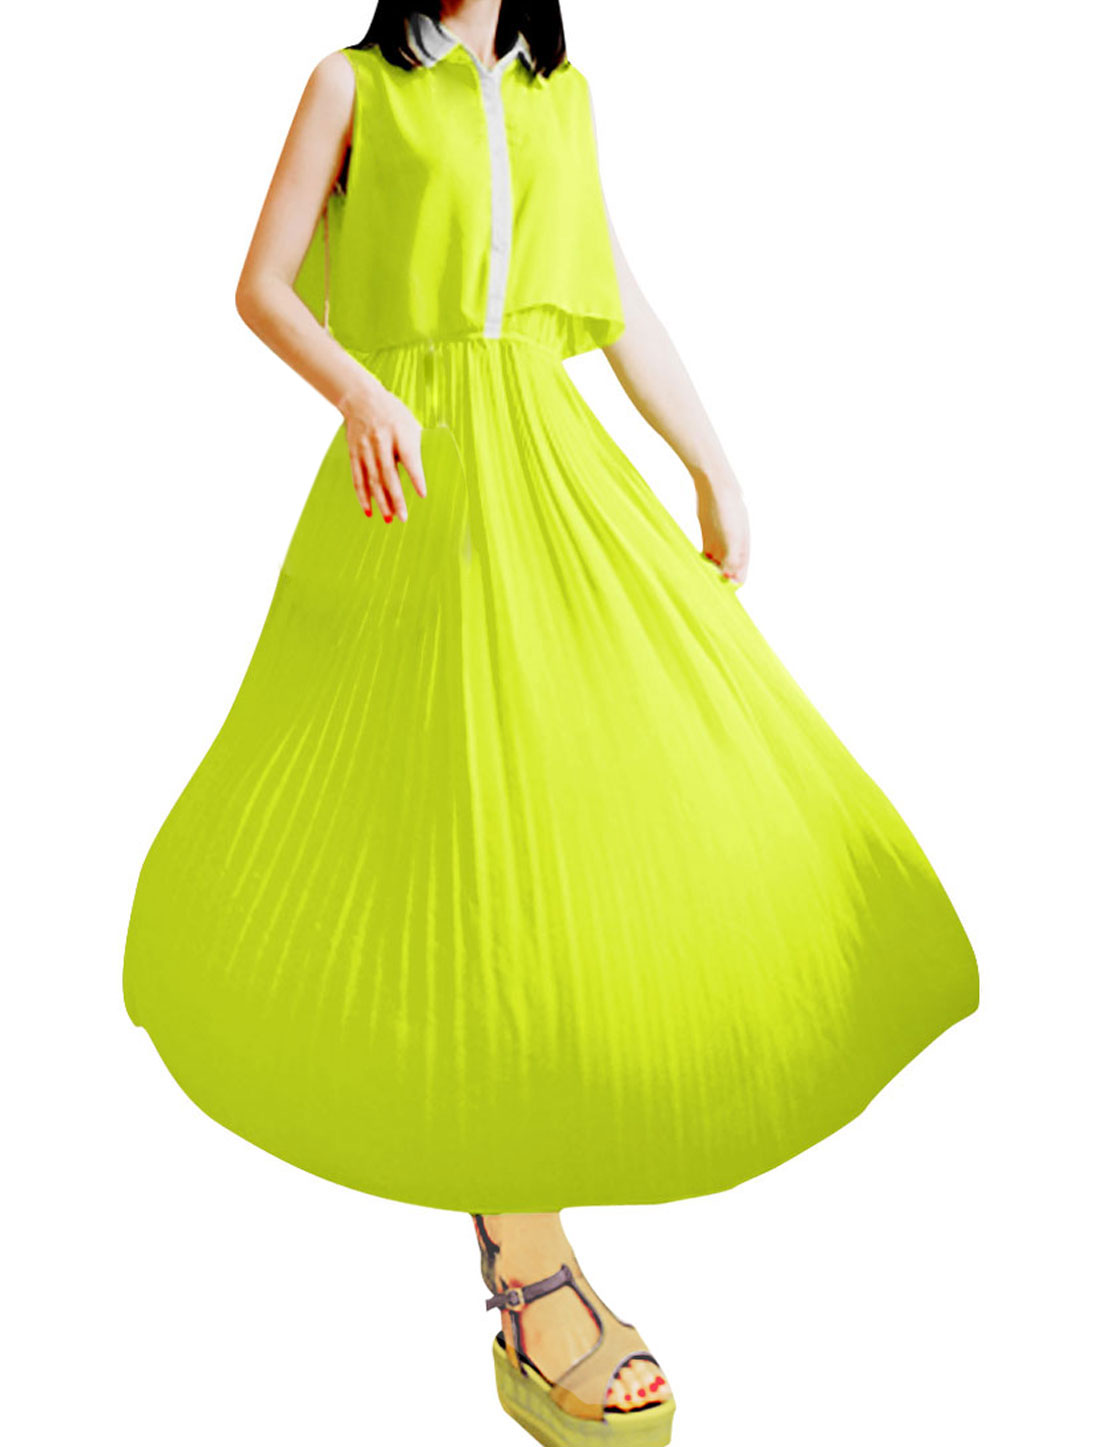 Lady Sleeveless Button Up Semi-sheer Lining Dress Fluorescent Yellow S